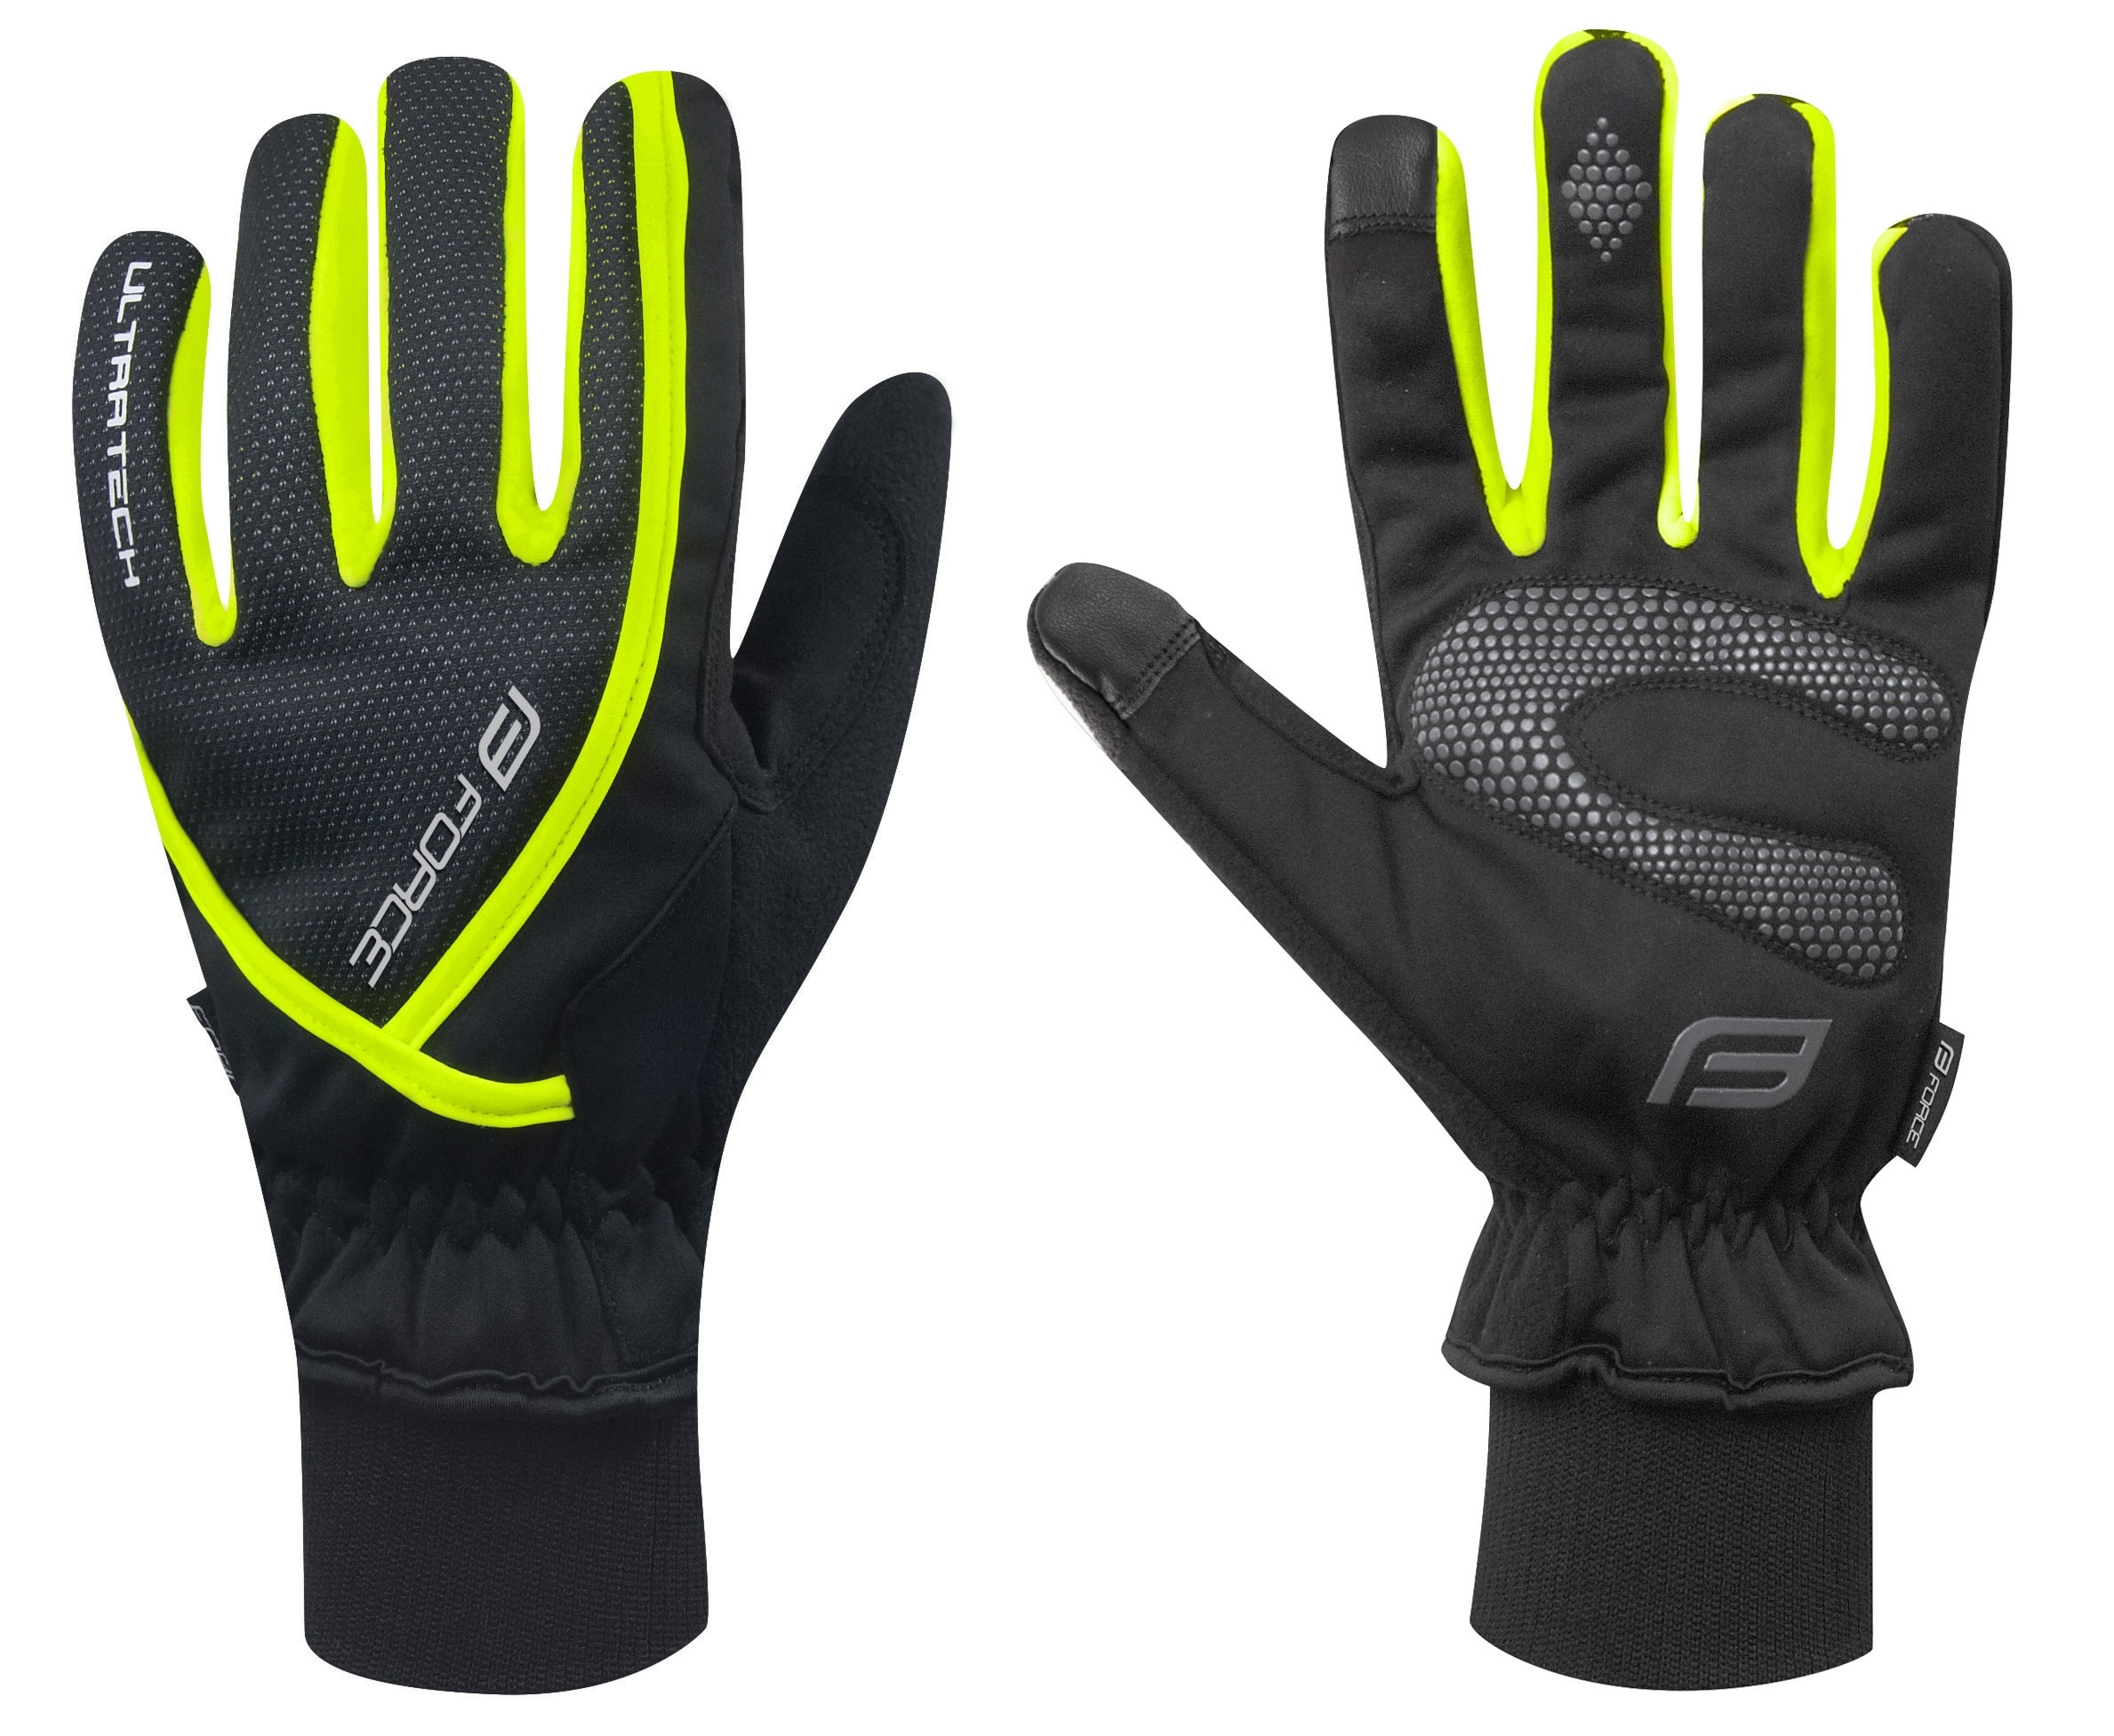 rukavice zimní FORCE ULTRA TECH, fluo M